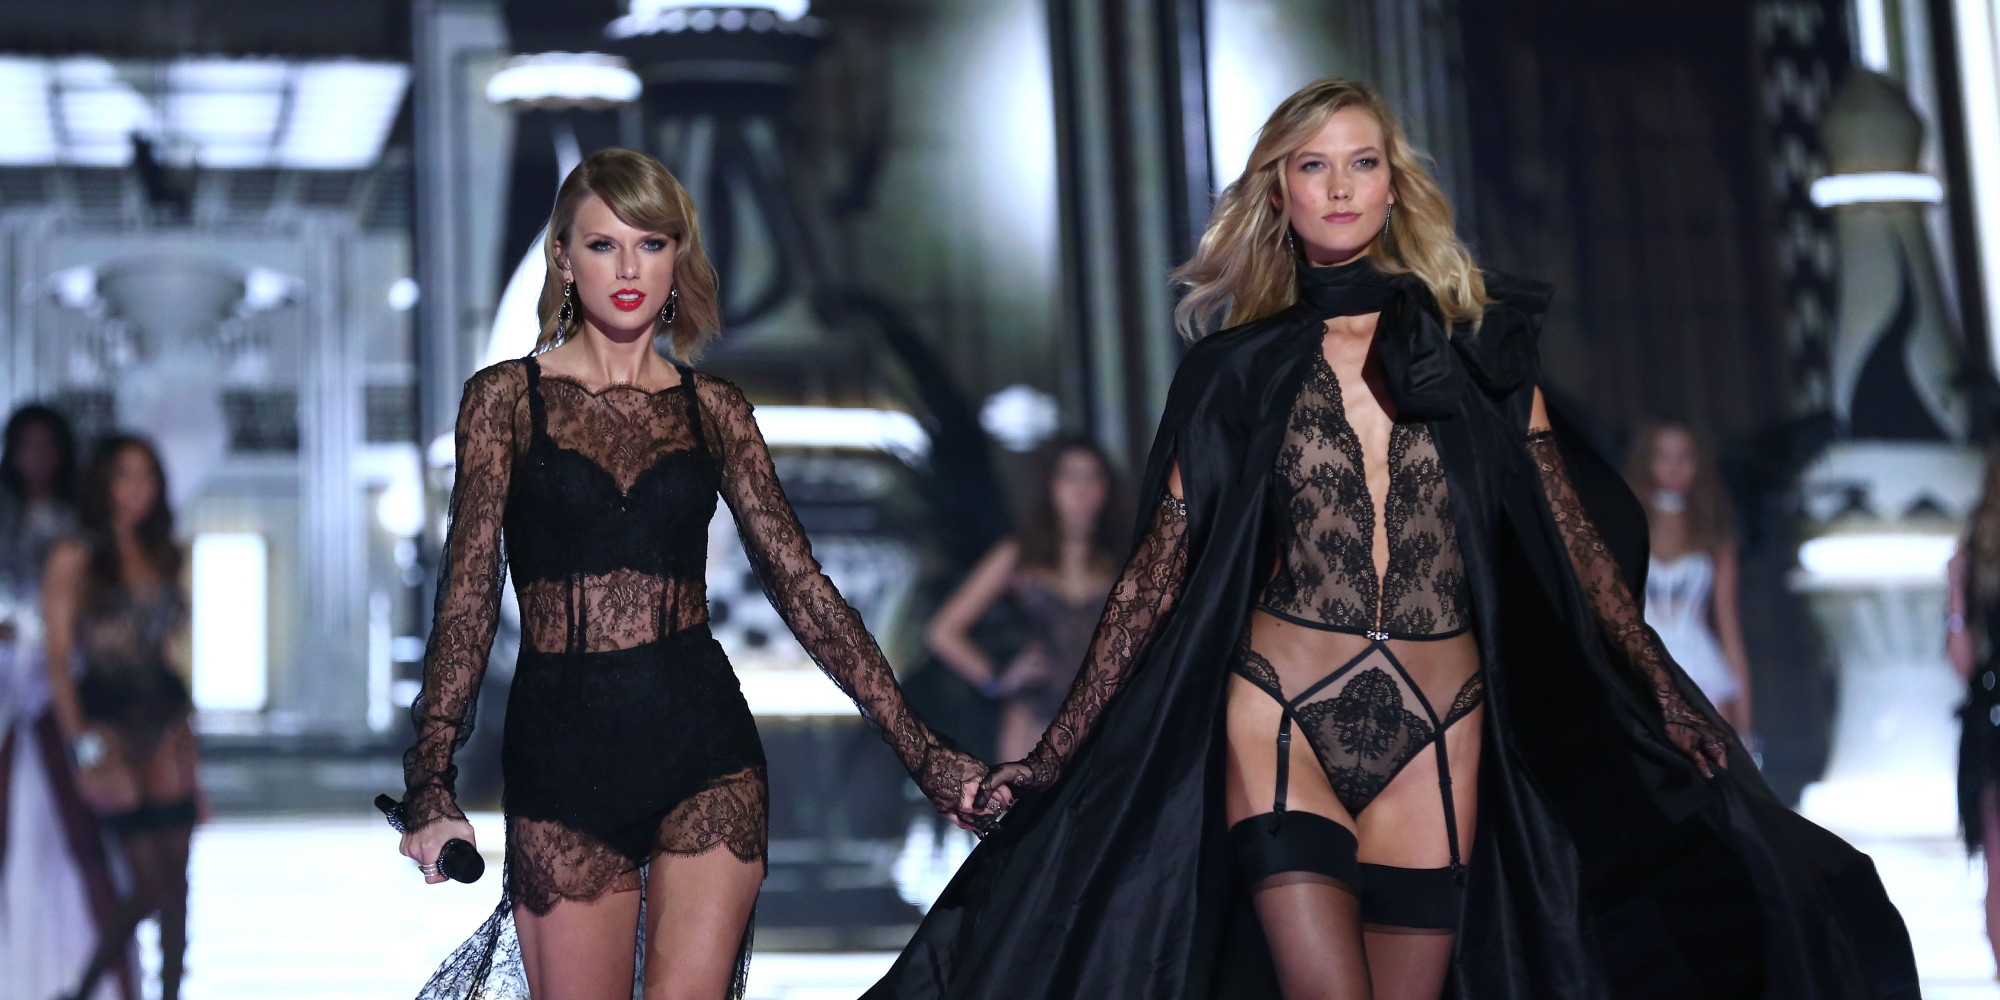 Swift & Kloss